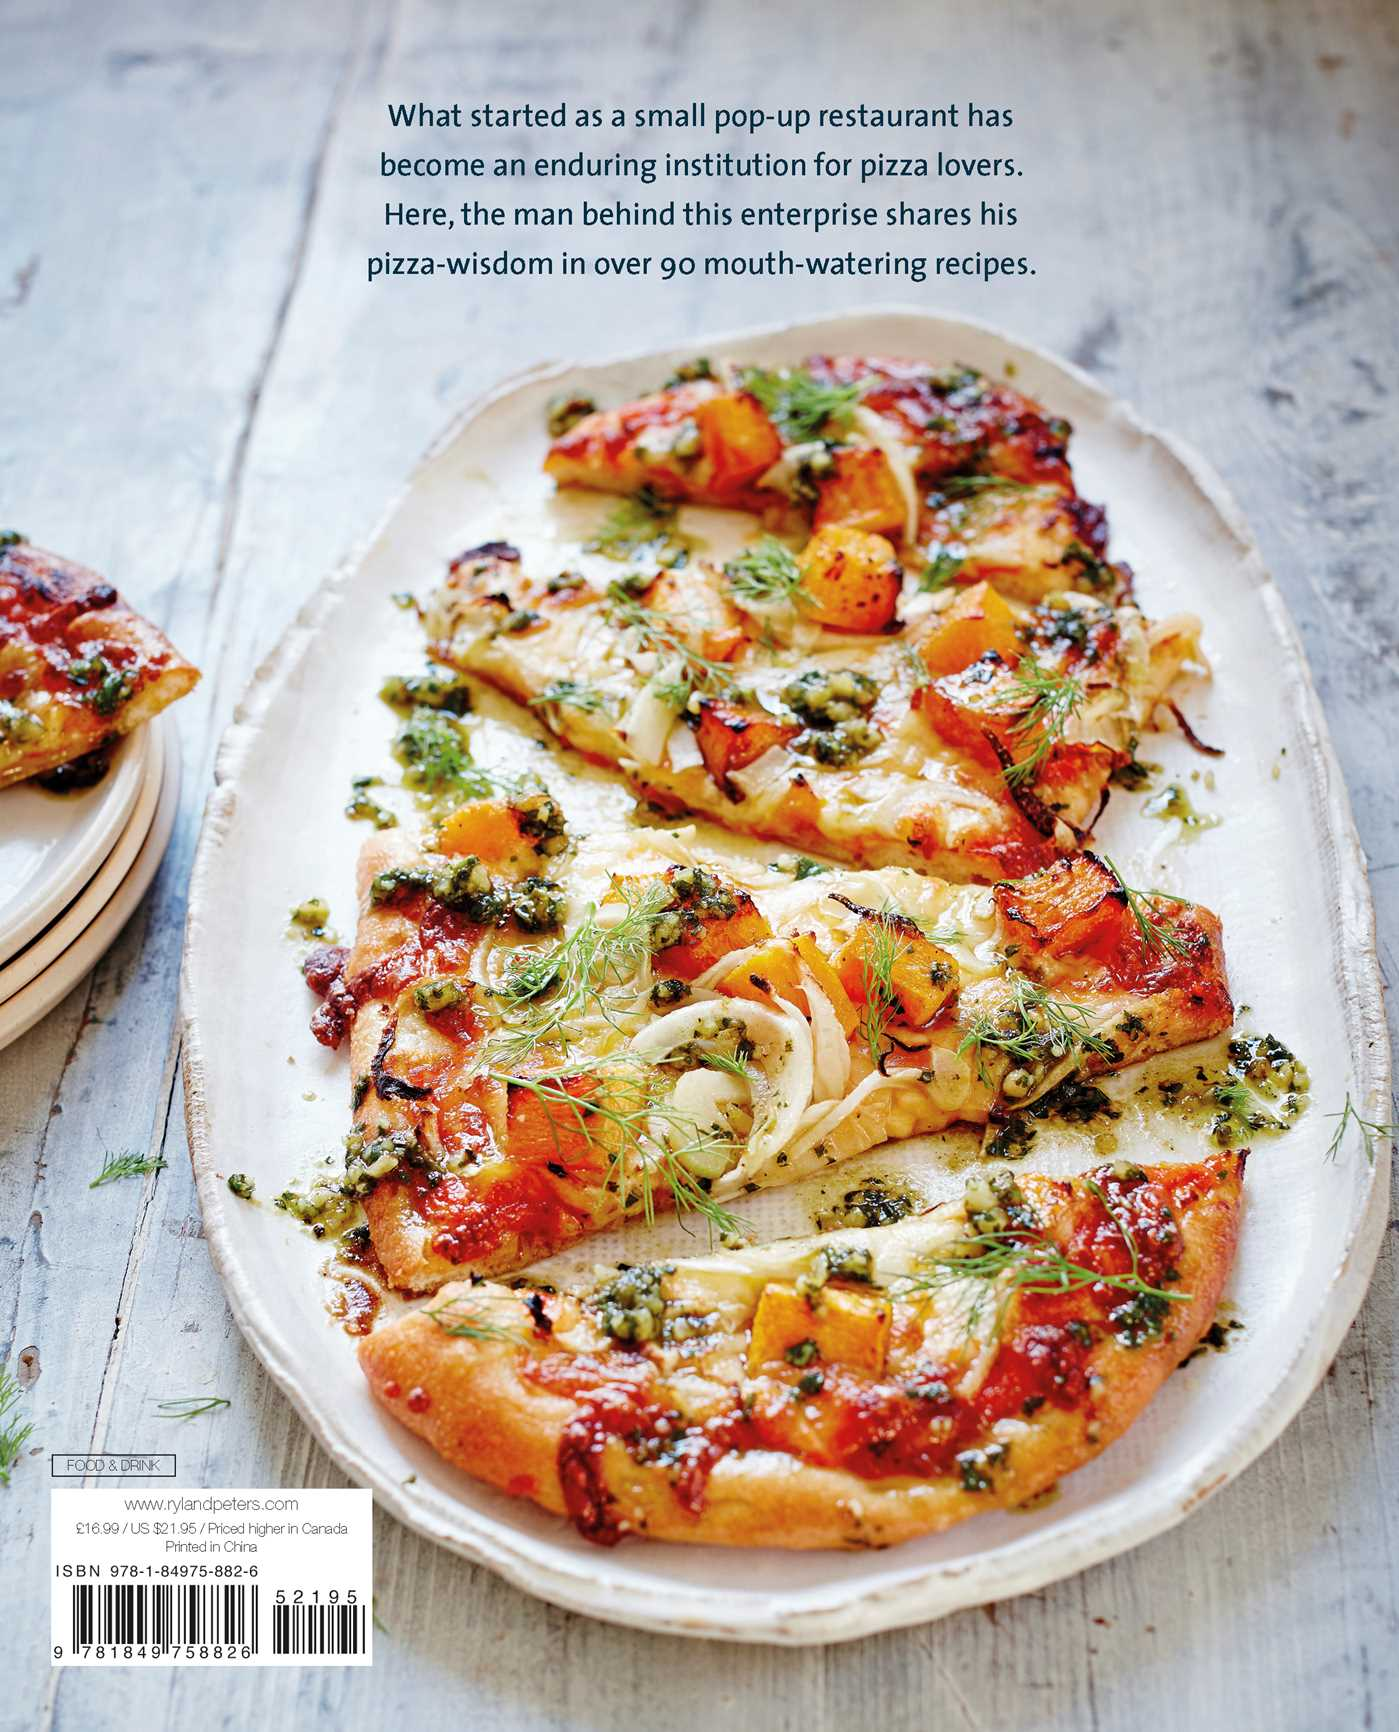 Saturday pizzas from the ballymaloe cookery school 9781849758826 hr back